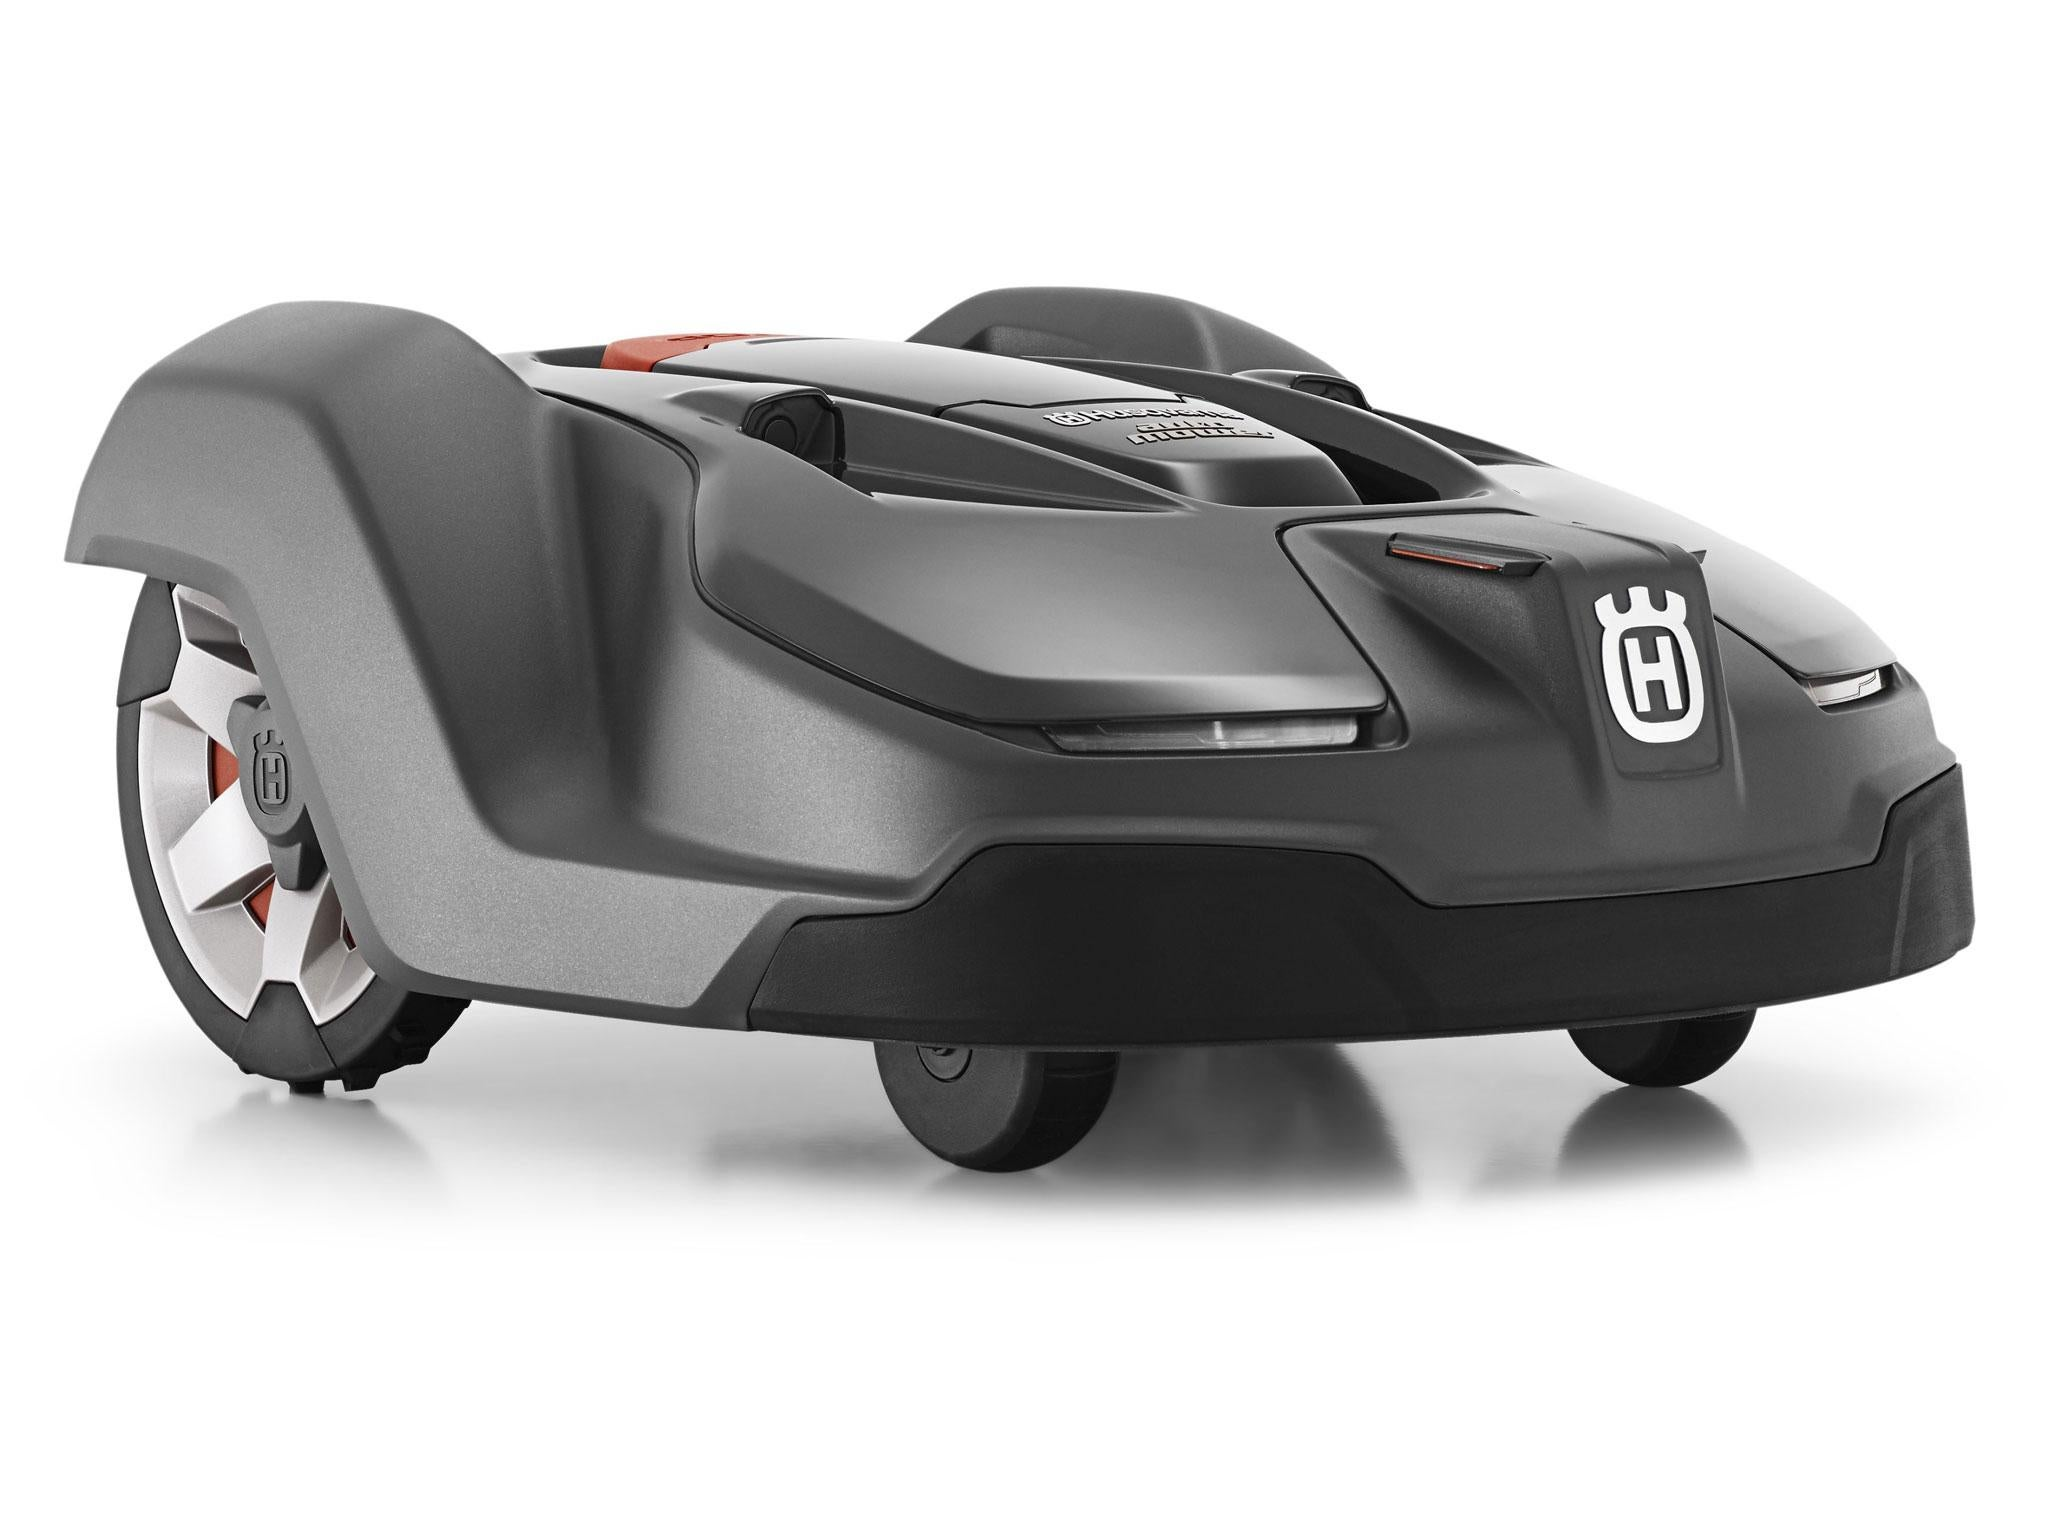 9 best robot lawnmowers the independent the racing car of the robotic mower world it even looks like one this is excellent for complicated lawns including obstacles narrow passages fandeluxe Images